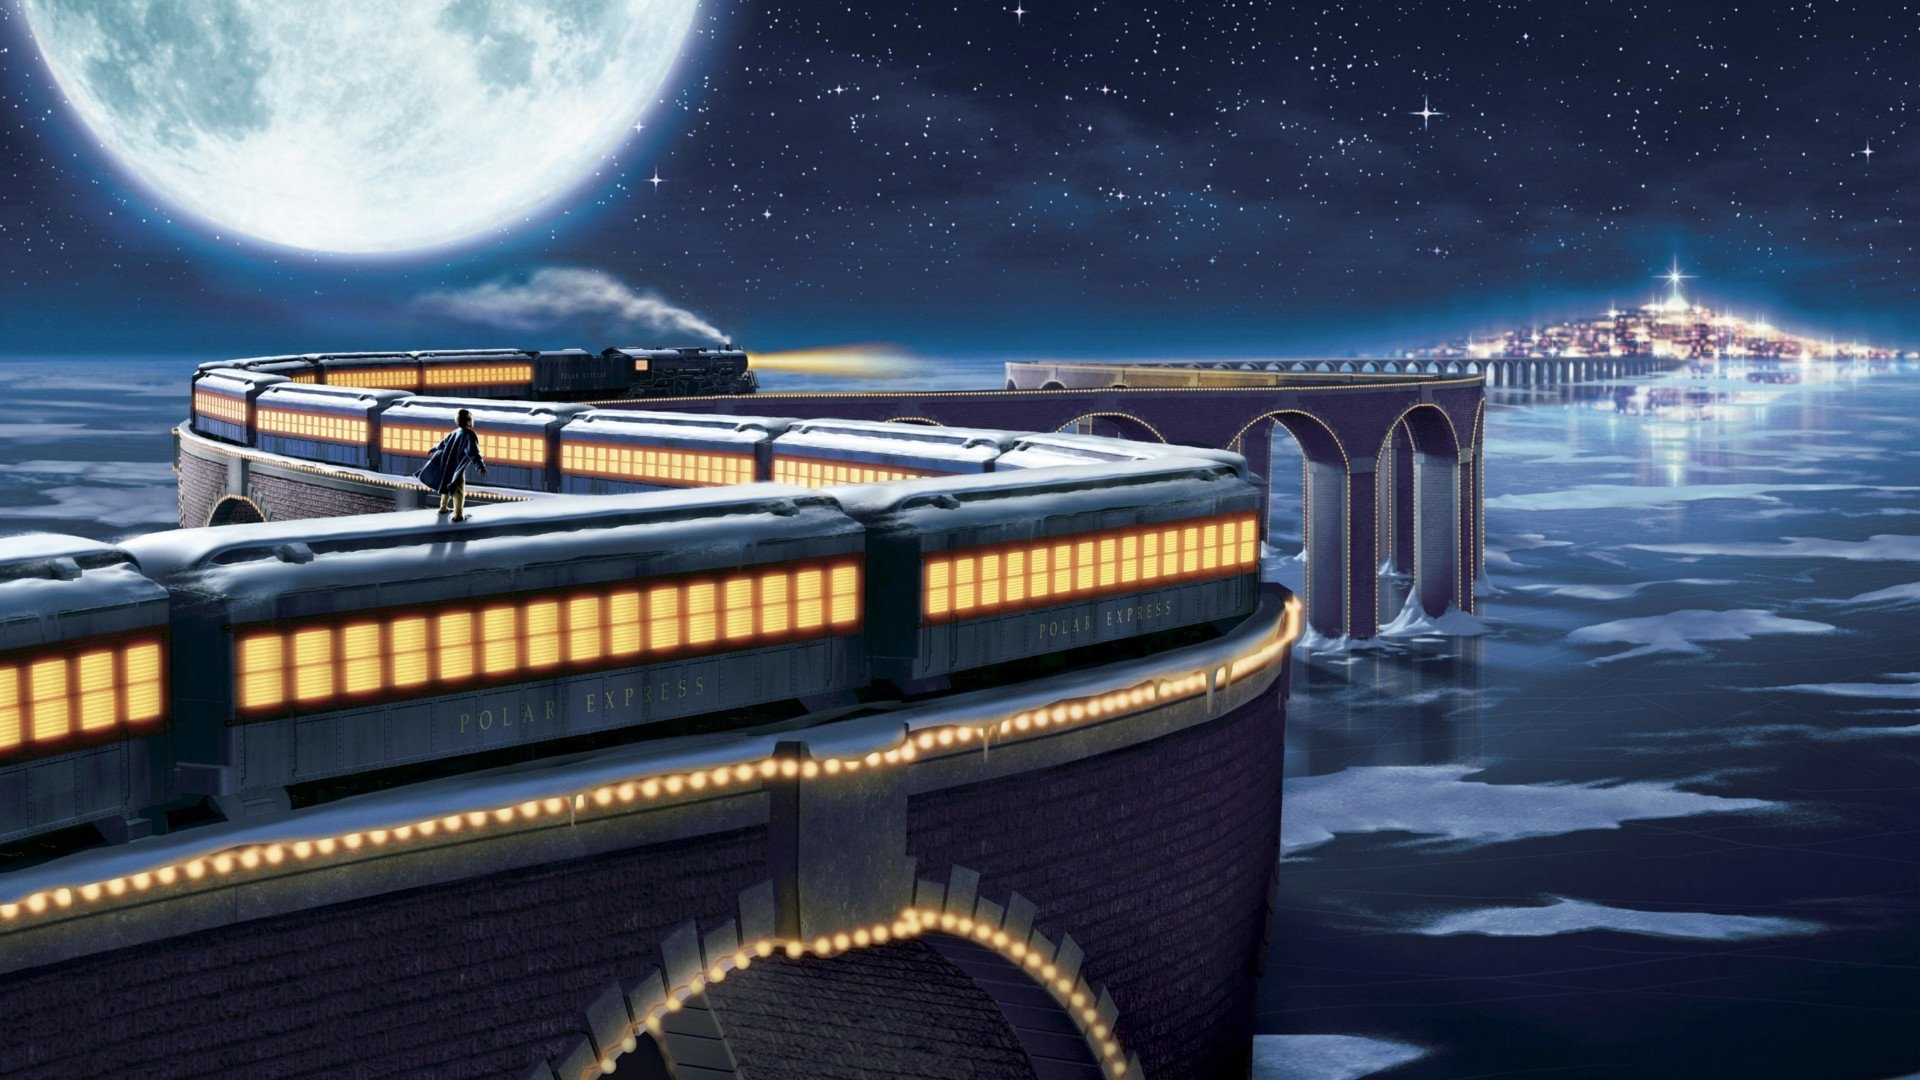 3 the polar express fonds d'écran hd | arrière-plans - wallpaper abyss